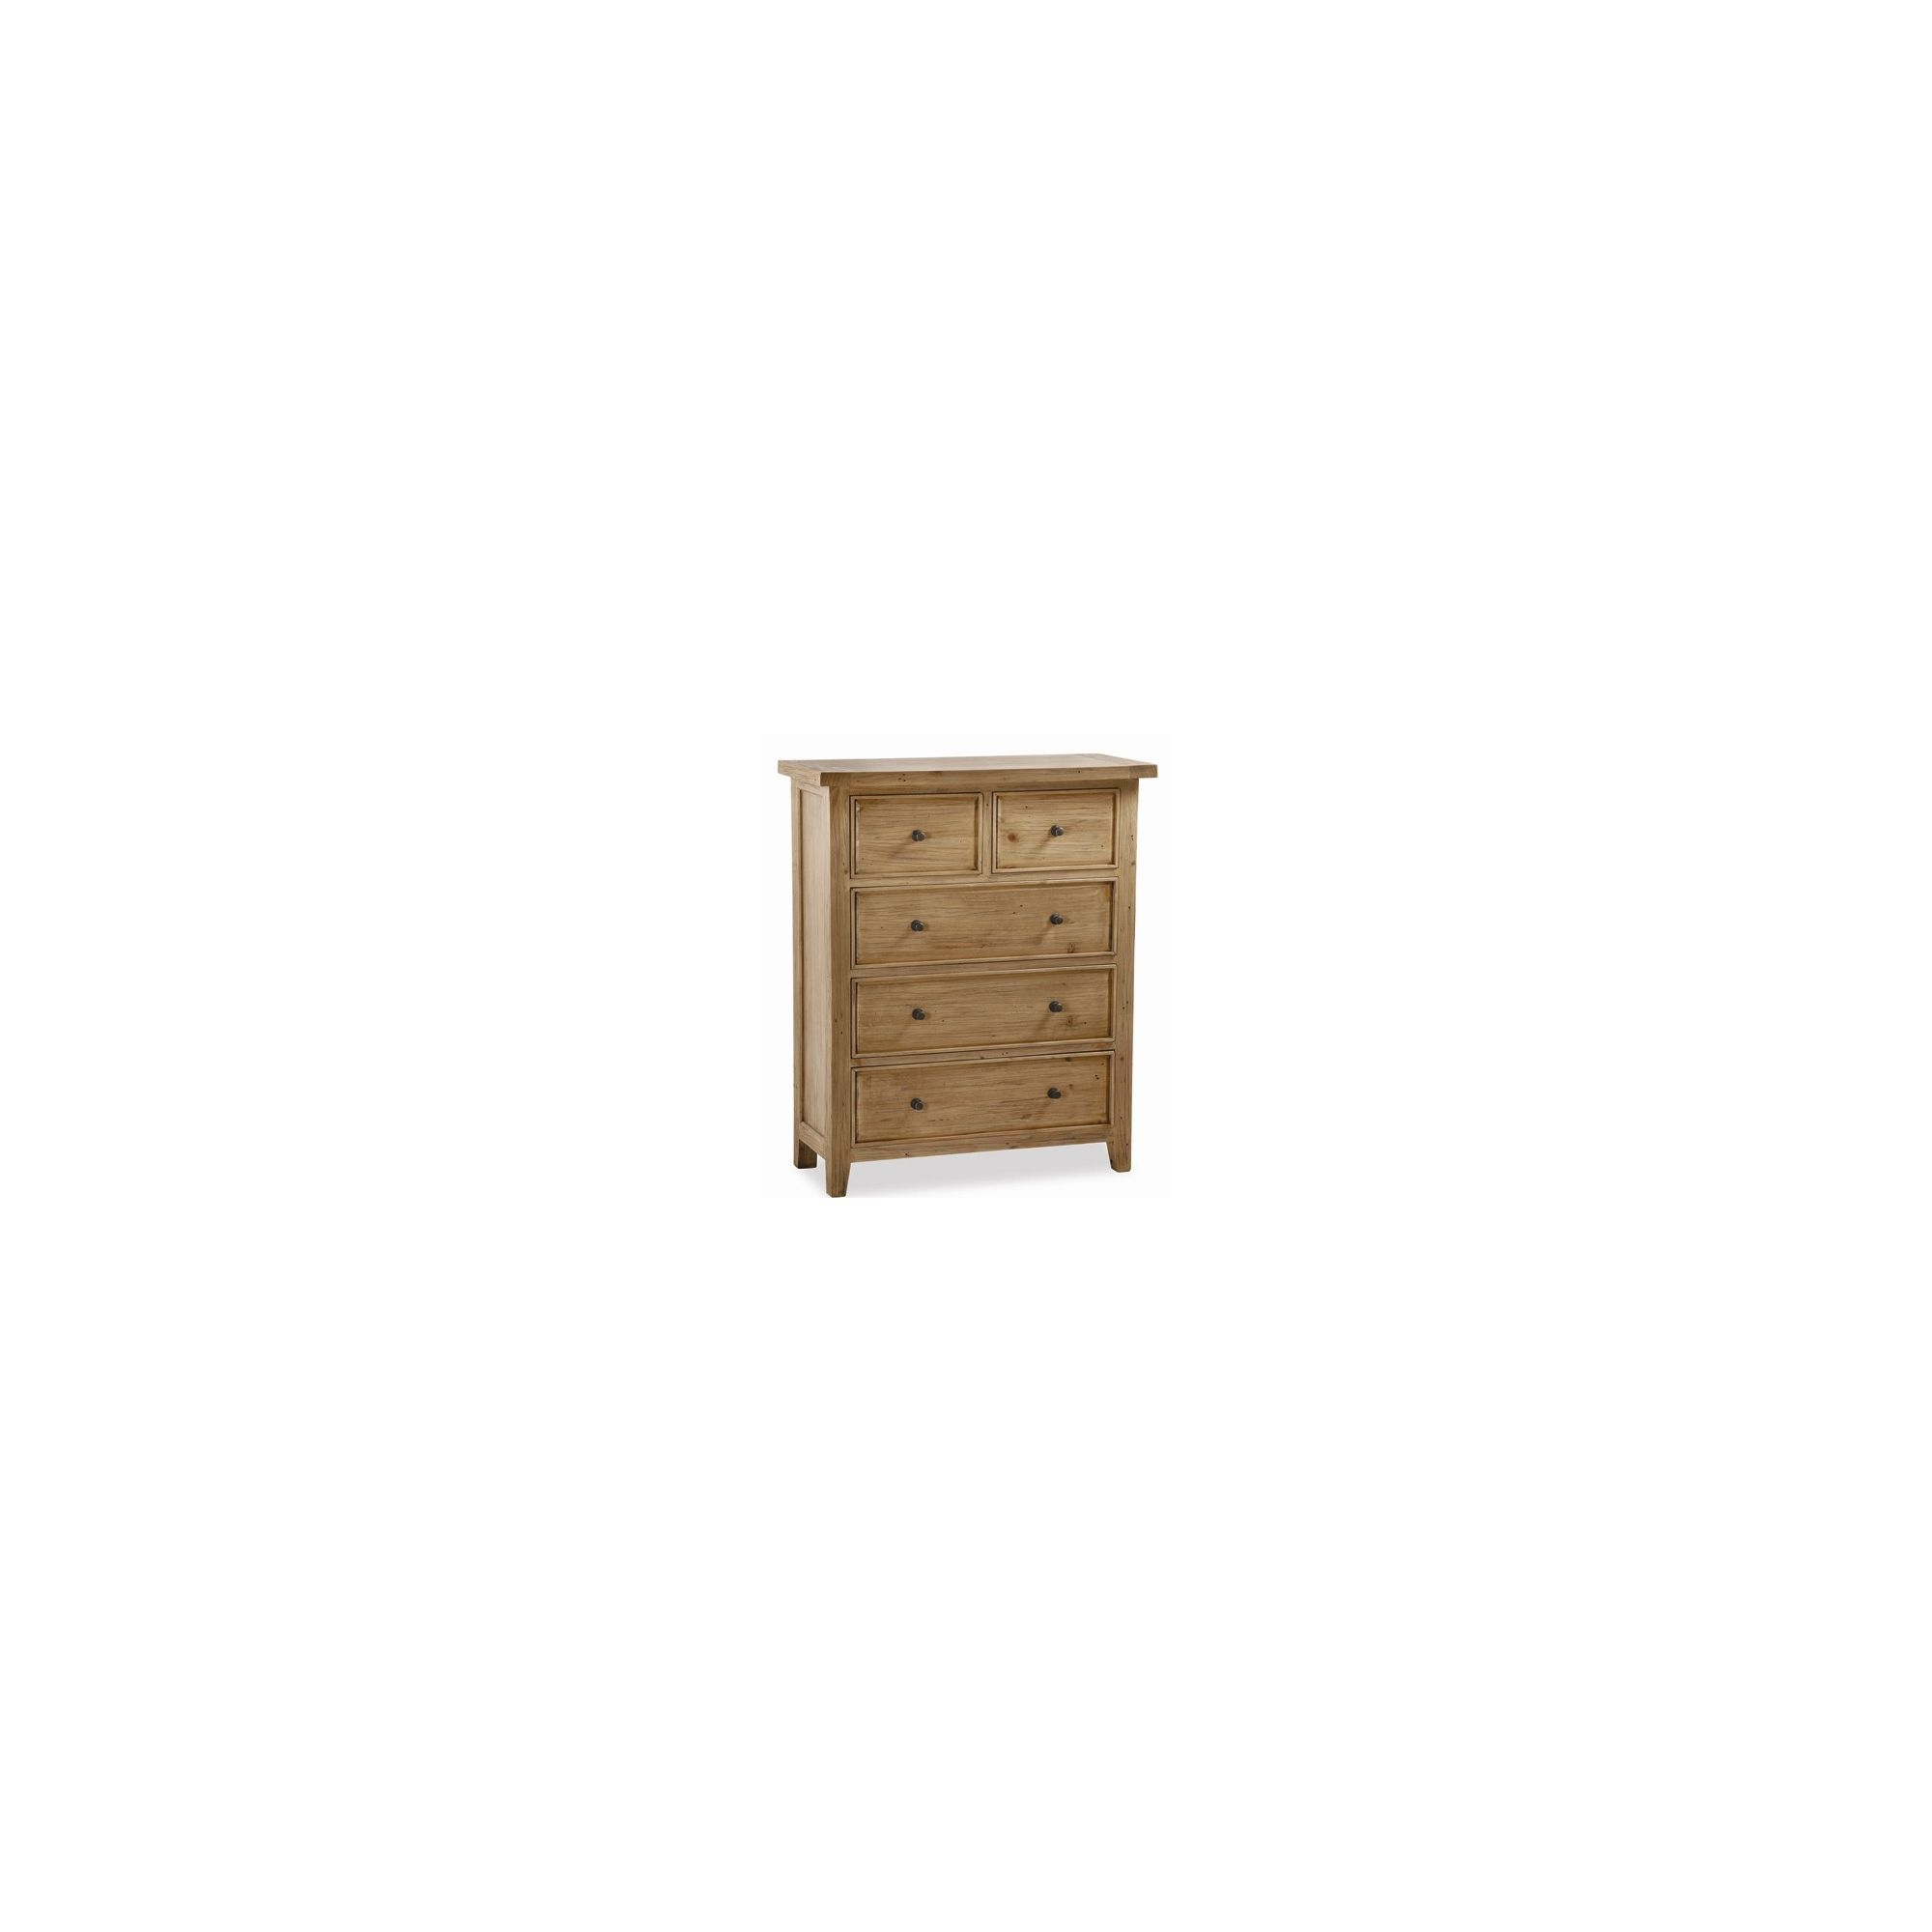 Alterton Furniture Naples 3 Drawer Chest at Tesco Direct